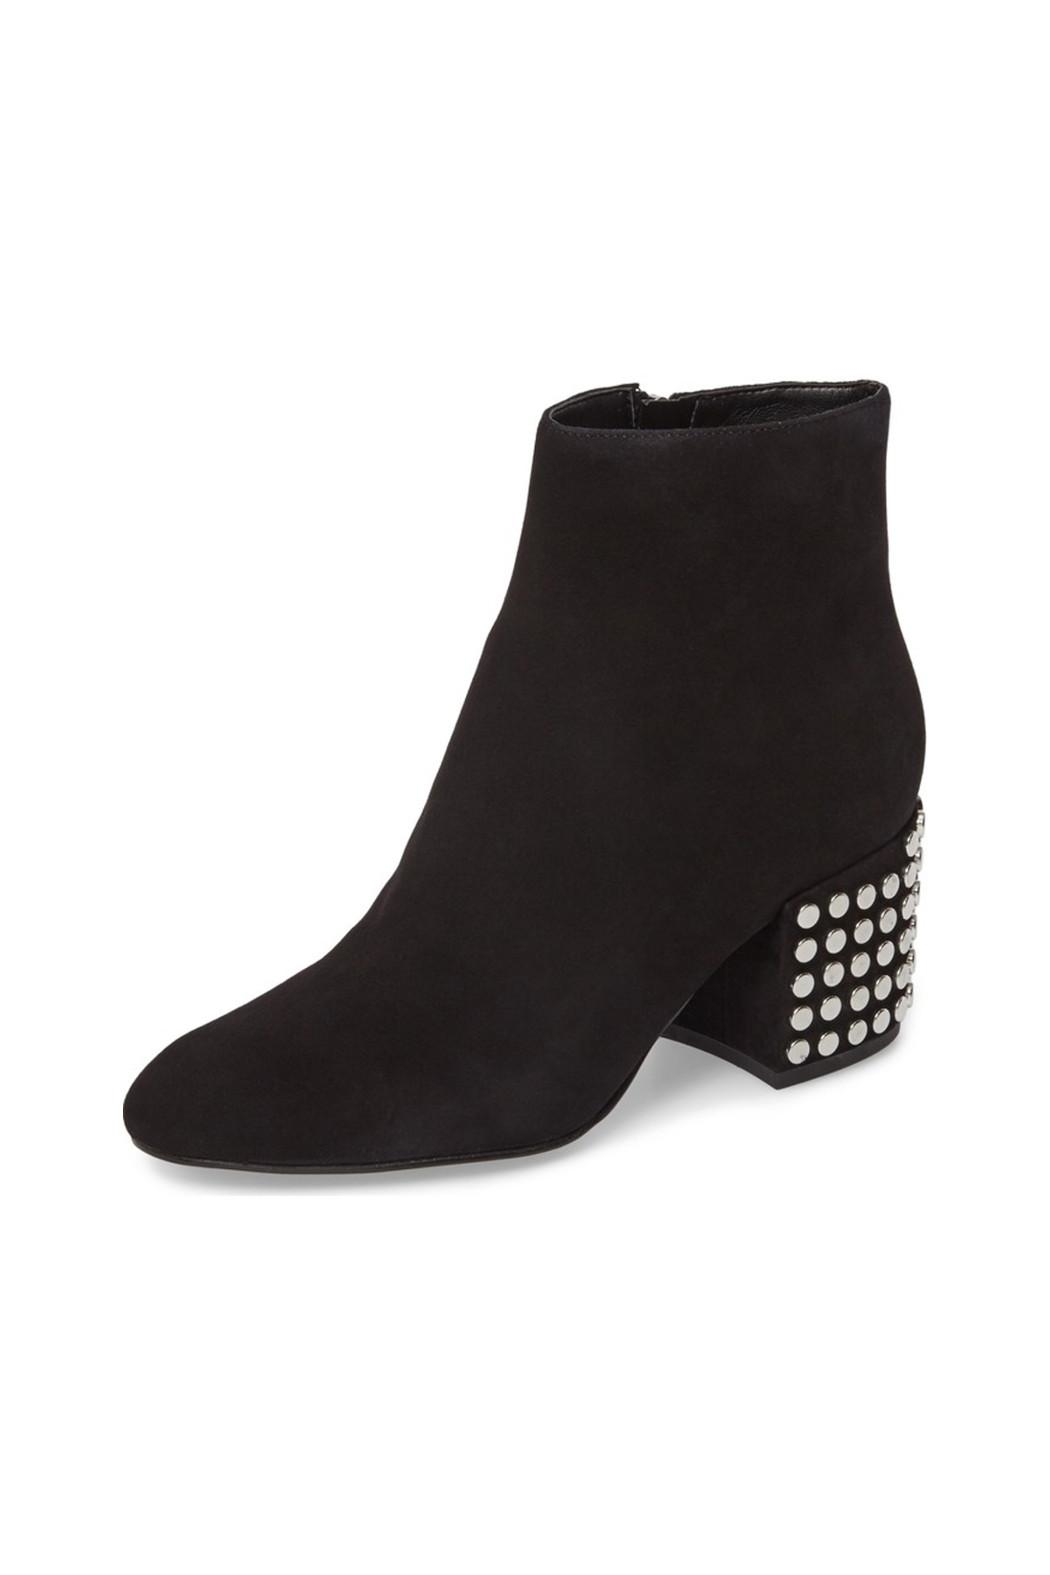 Kendall + Kylie Studded Heel Boot - Main Image